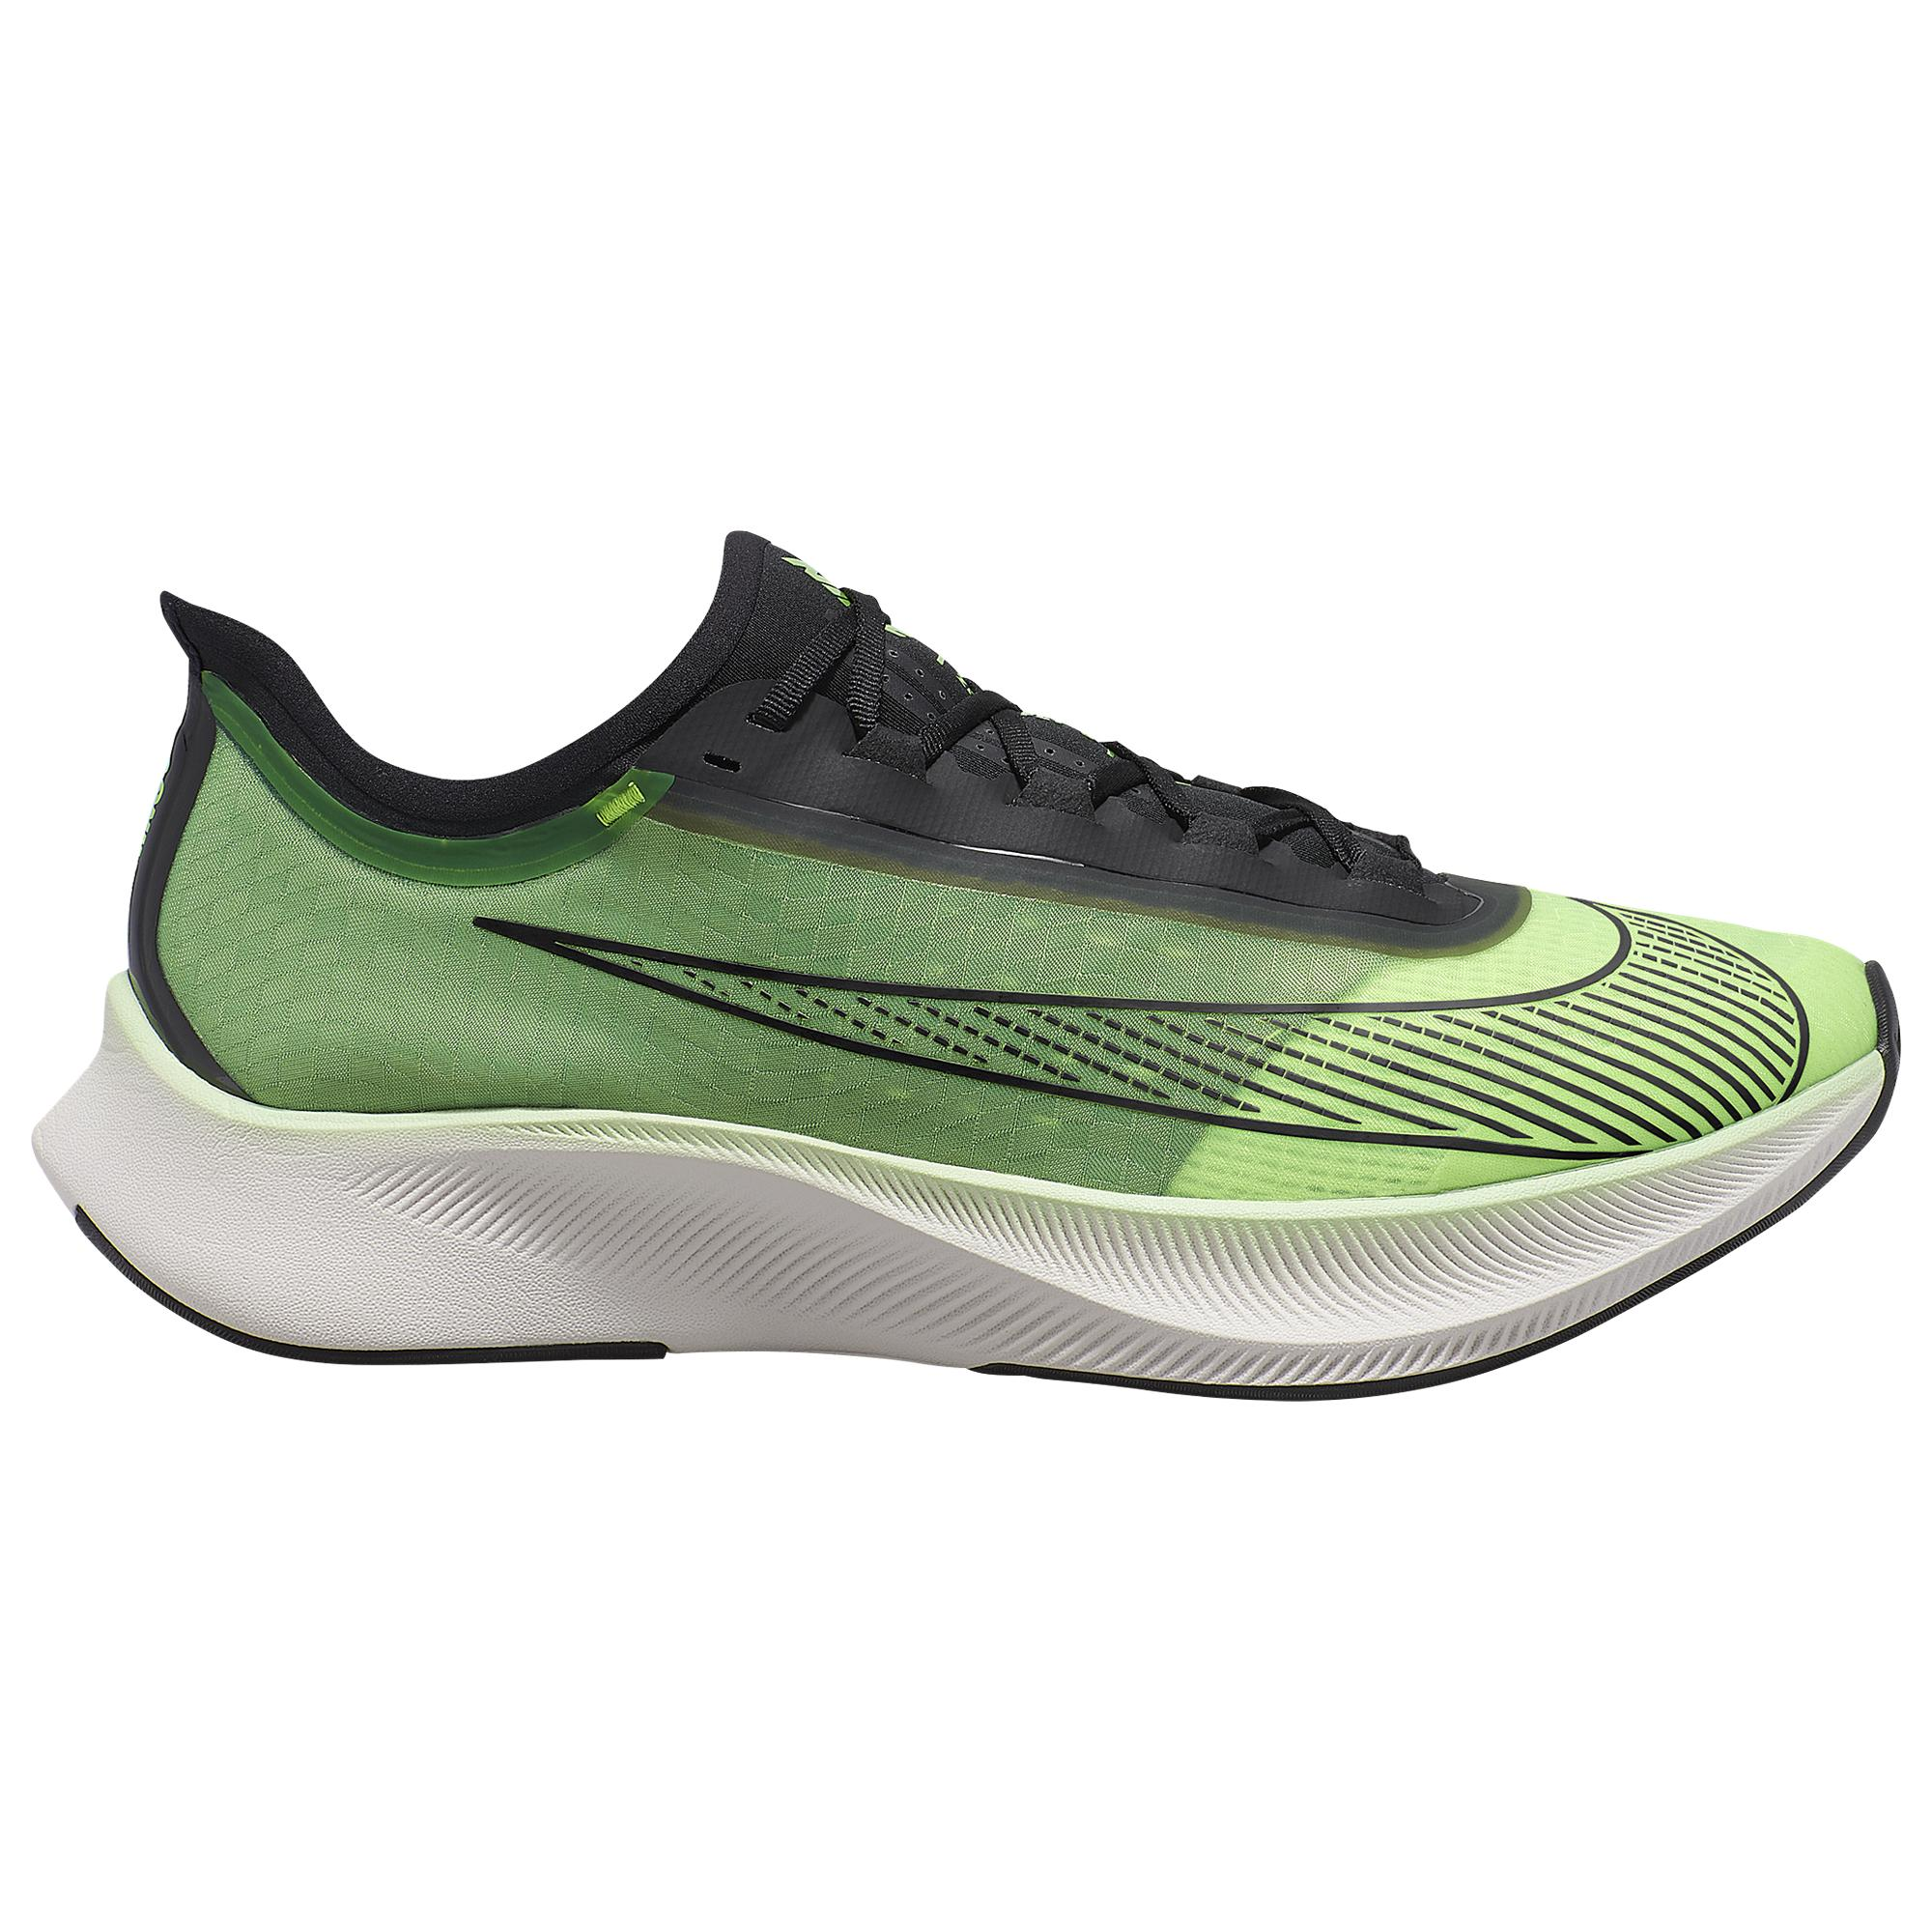 Nike Rubber Zoom Fly 3 Racing Flats in